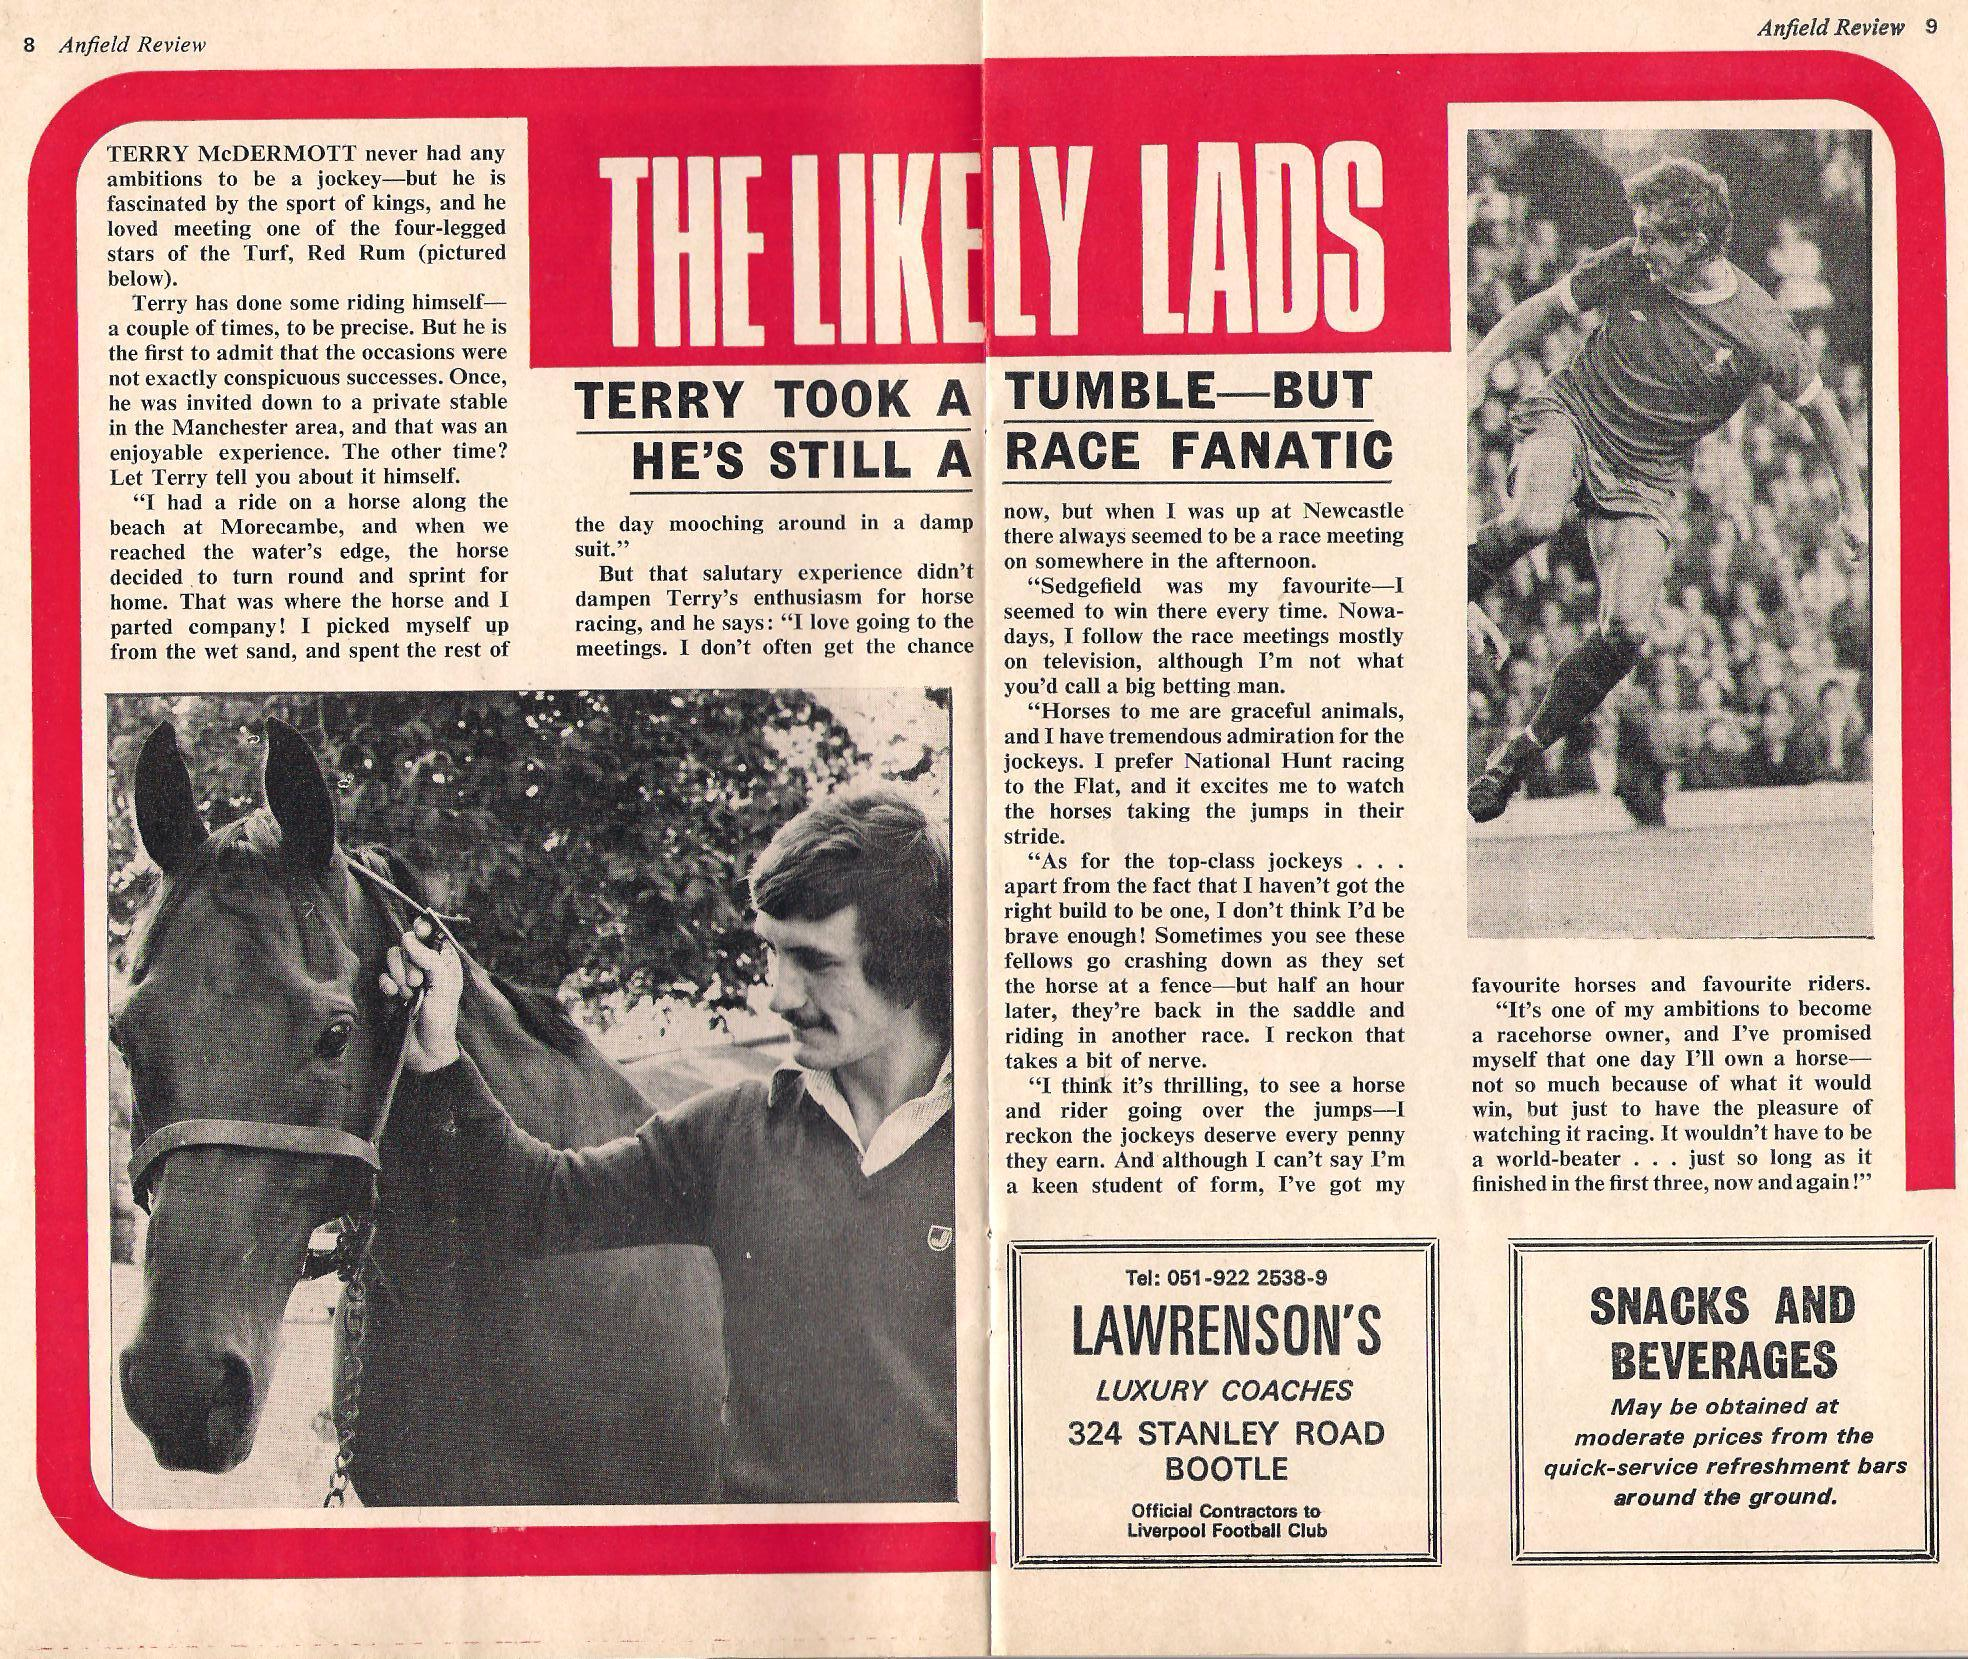 The likely lads - 1975